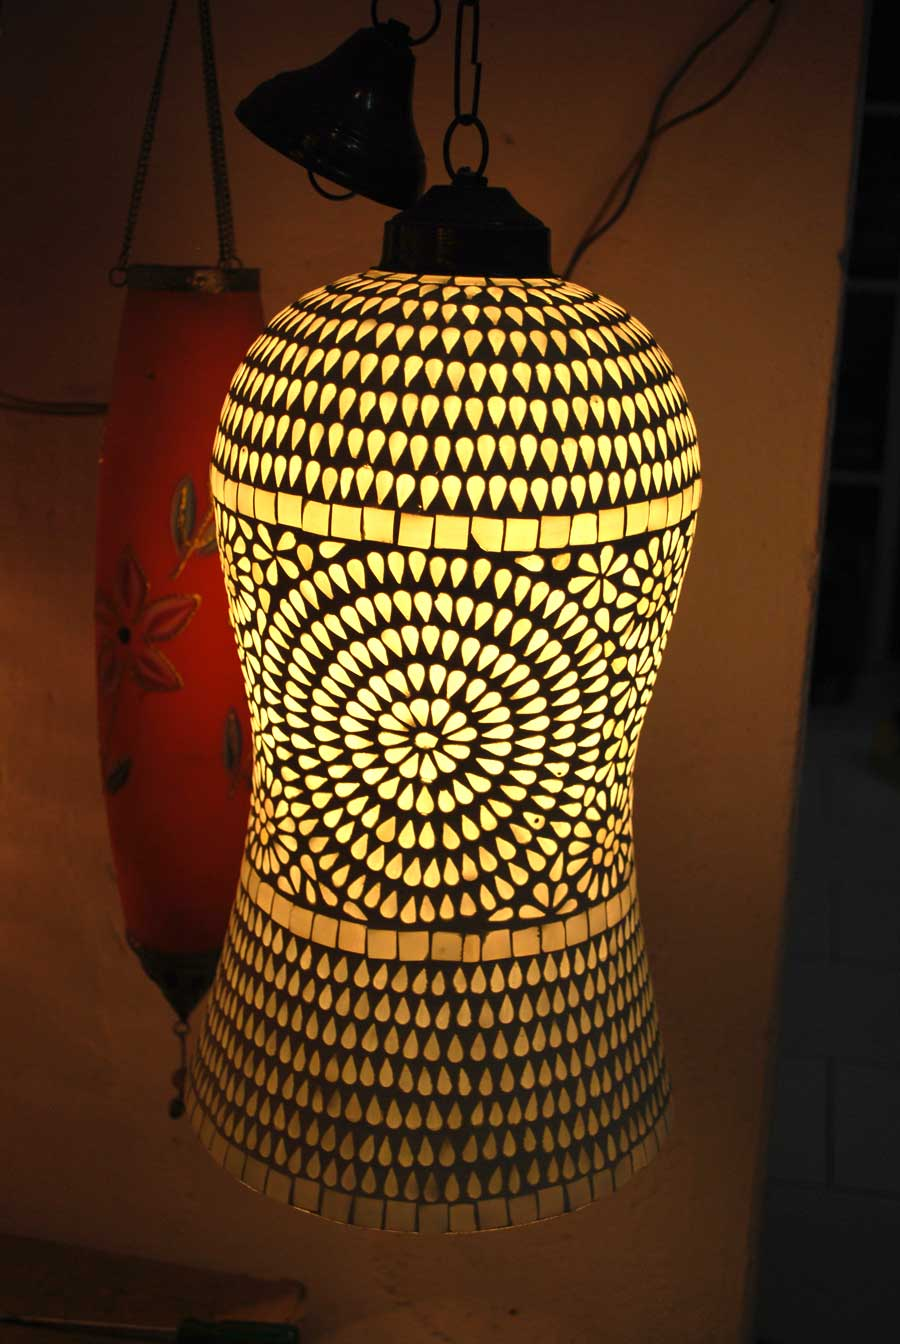 Indian handmade glass lamp shades buy colored lamp shades indian indian handmade glass lamp shades buy colored lamp shades indian lamp shades palacious lamp shades designer lamp shades colorful lamp shadesbeaded lamp aloadofball Image collections